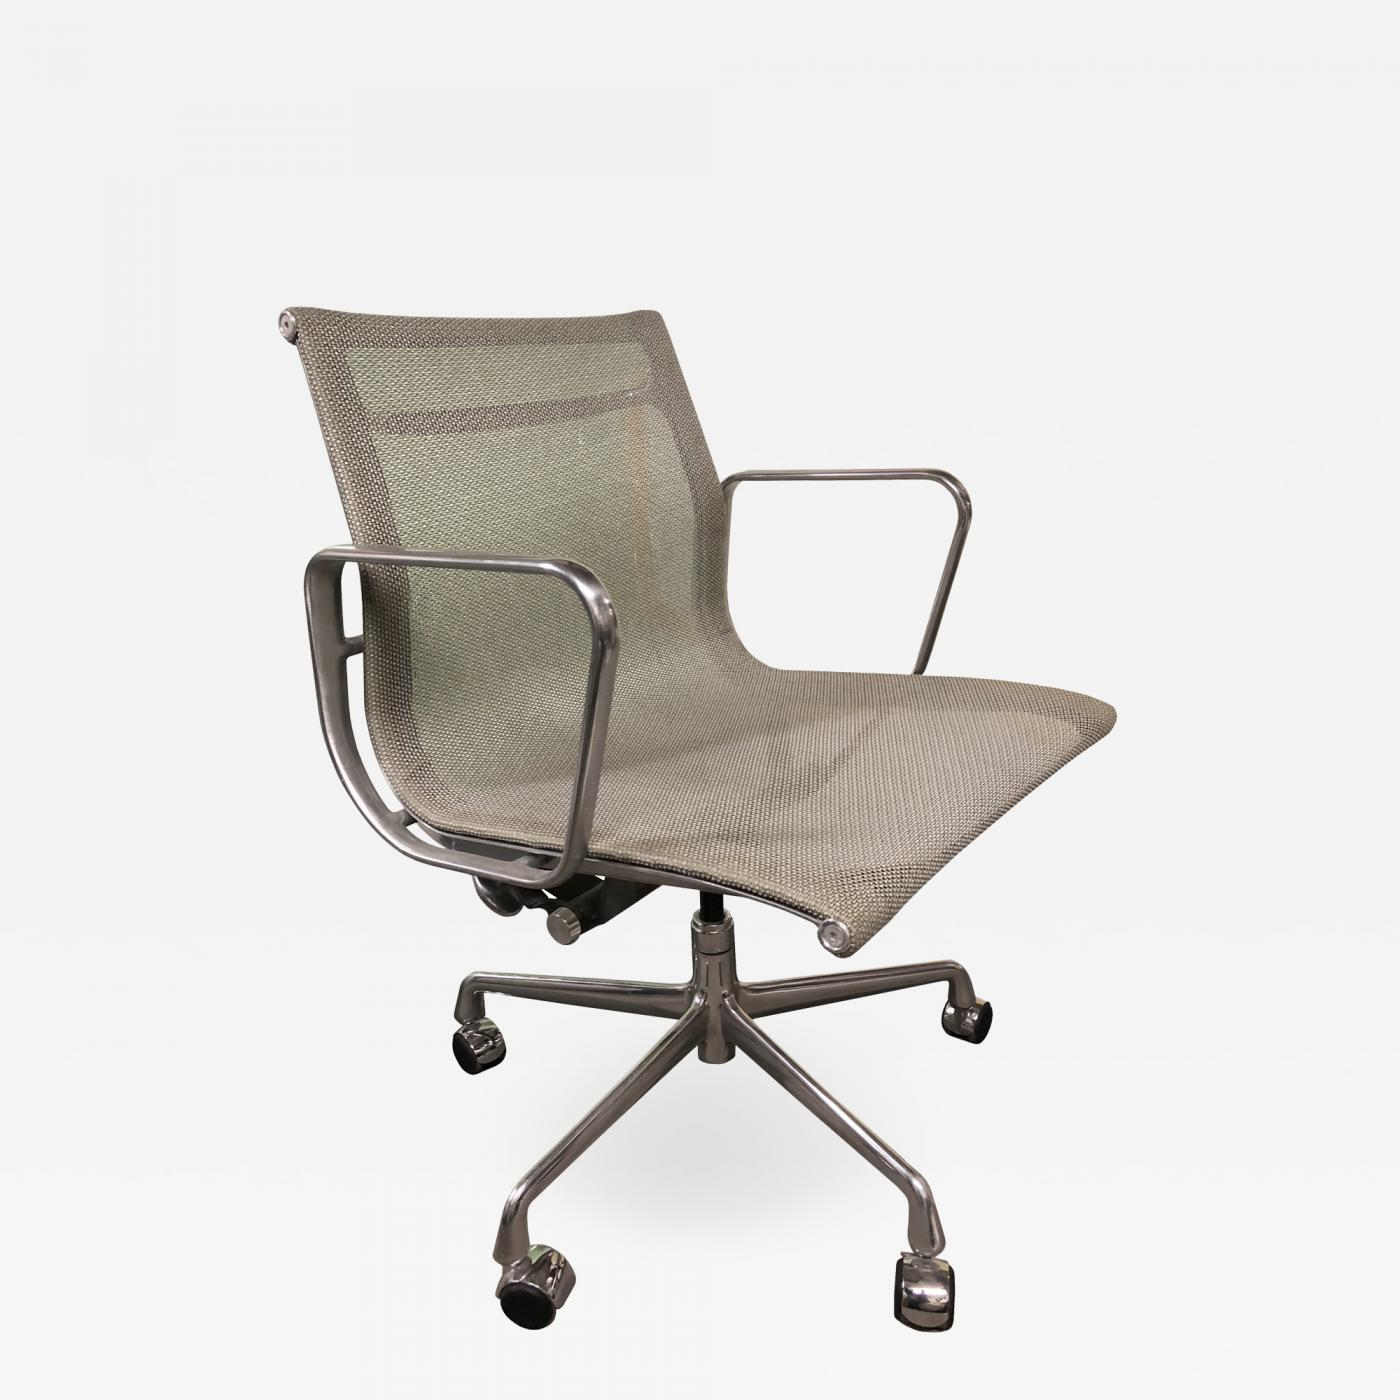 new arrival 7ae74 b5bc4 Charles & Ray Eames - Eames for Herman Miller Aluminium Group Chair in Gray  Mesh